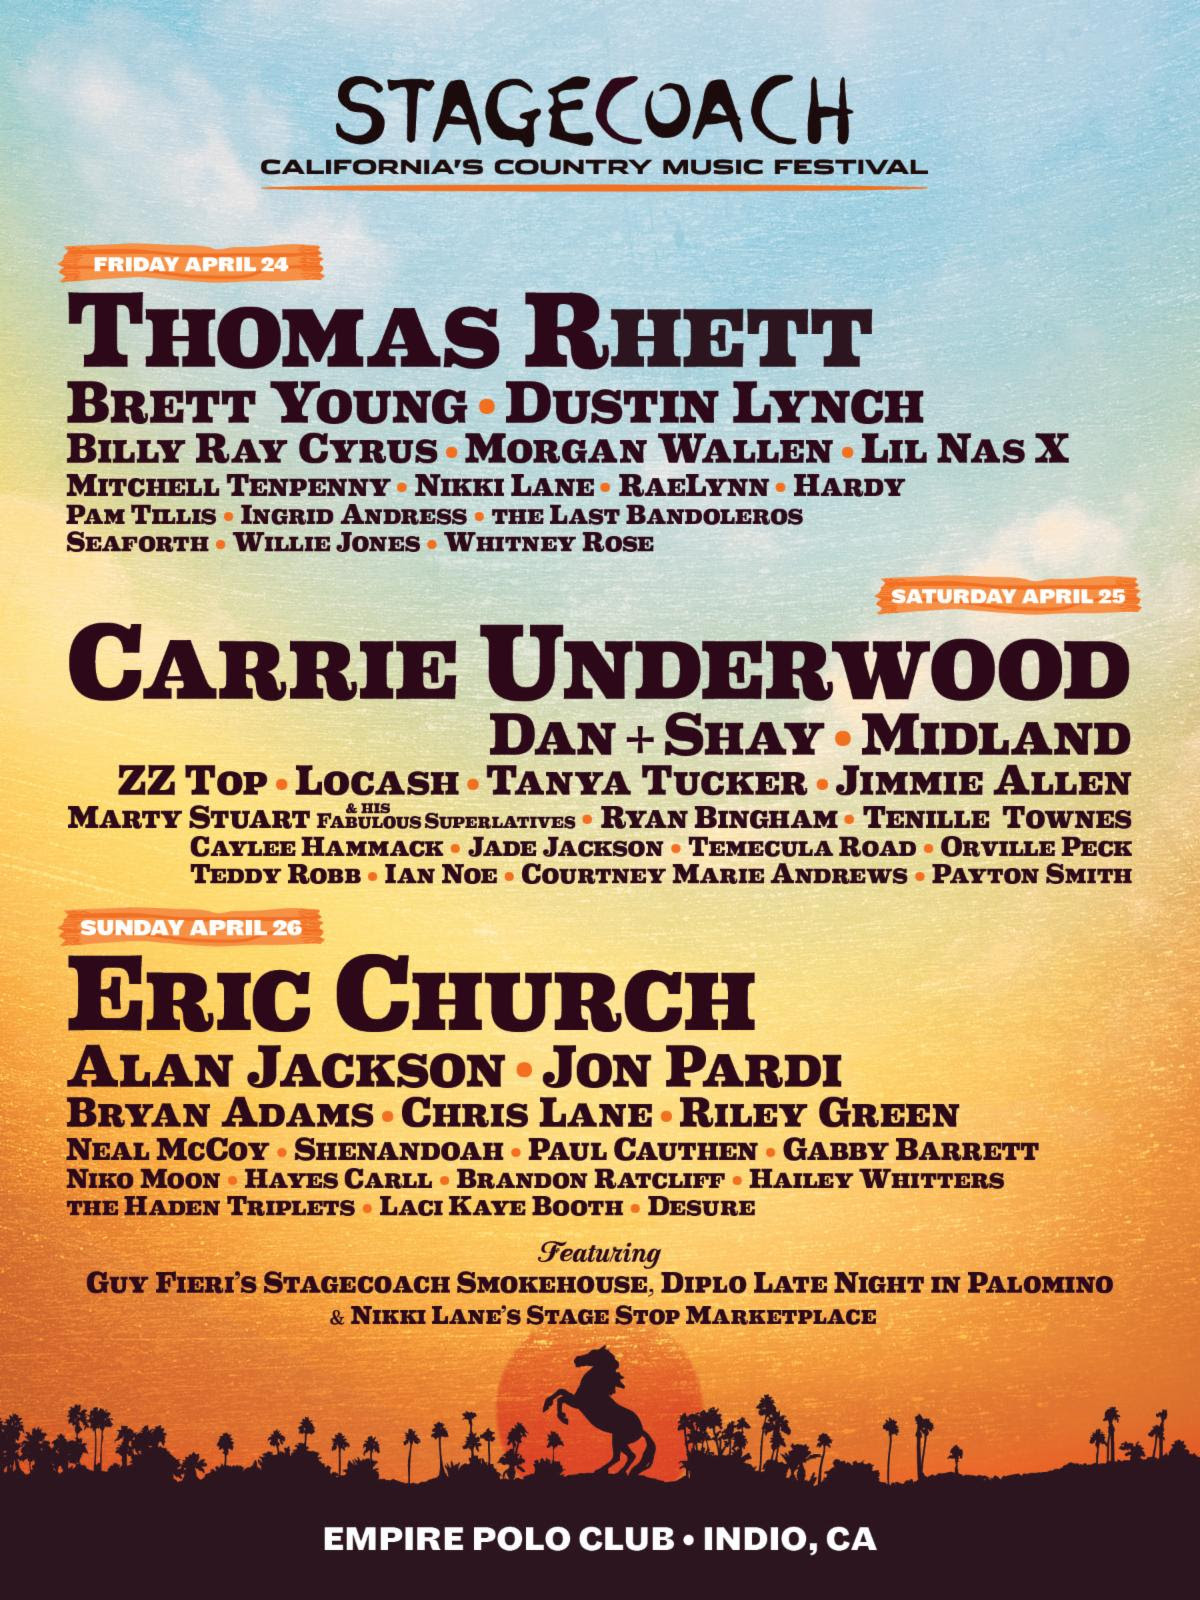 Outlaw Music Festival 2020 Lineup.Stagecoach Announces 2020 Lineup Featuring Eric Church